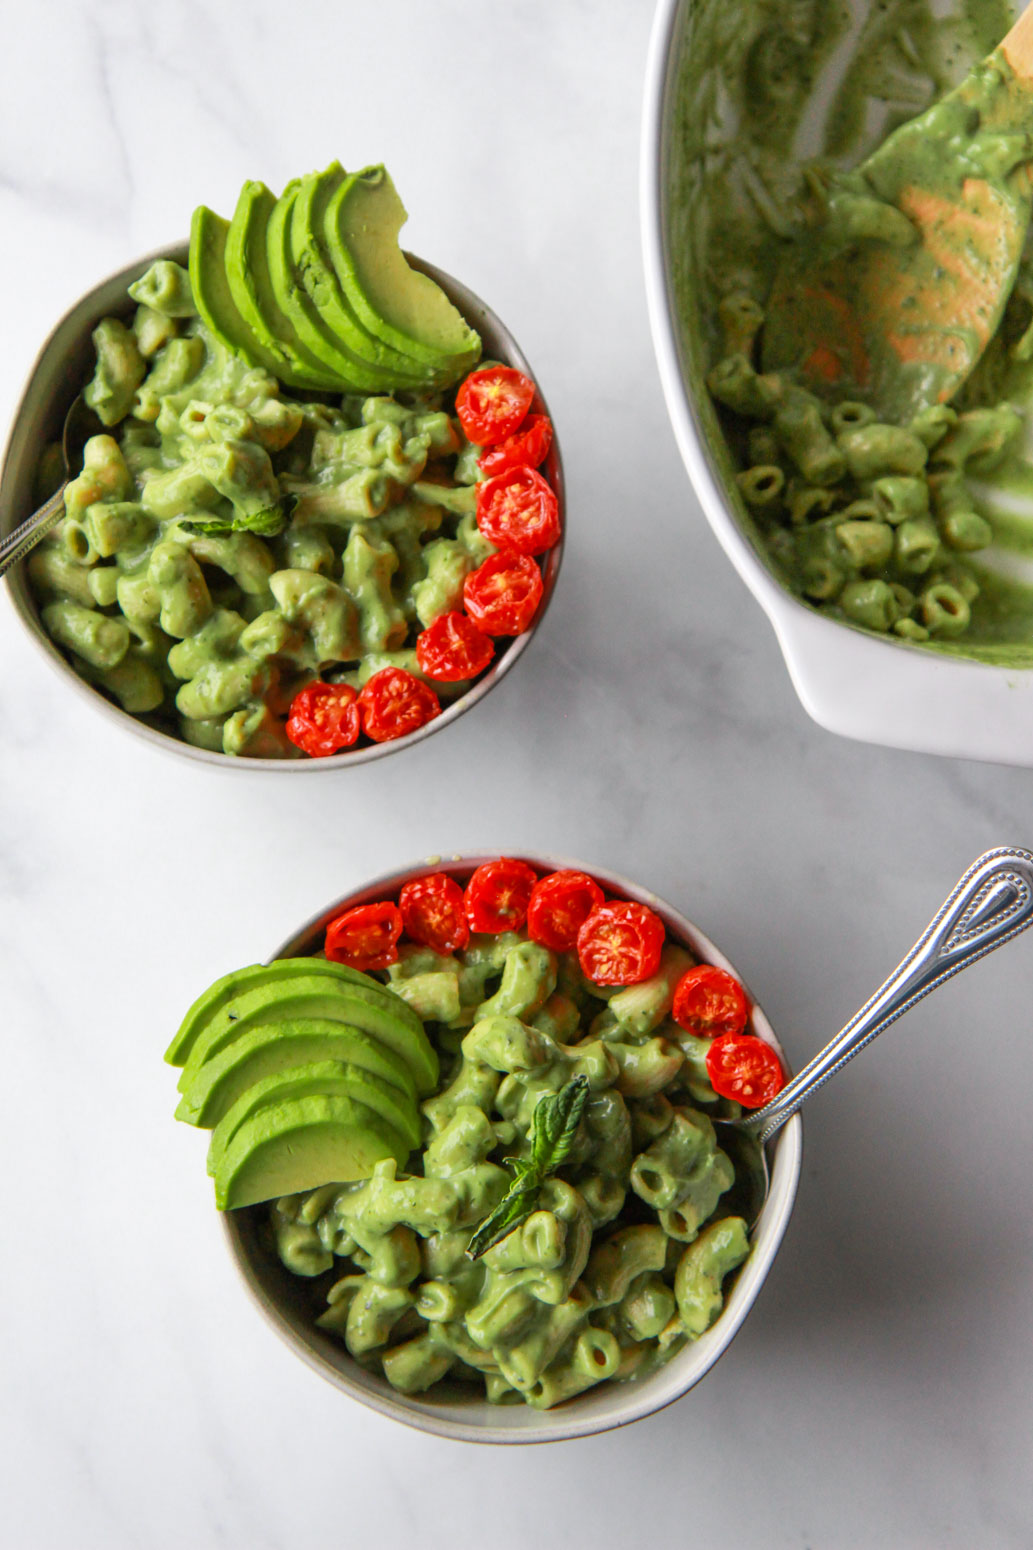 This creamy vegan avocado mac and cheese comes together in just 20 minutes. This nut-free vegan macaroni and cheese is unbelievably creamy and cheesy, due to the avocado and nutritional yeast. Gluten-free option.